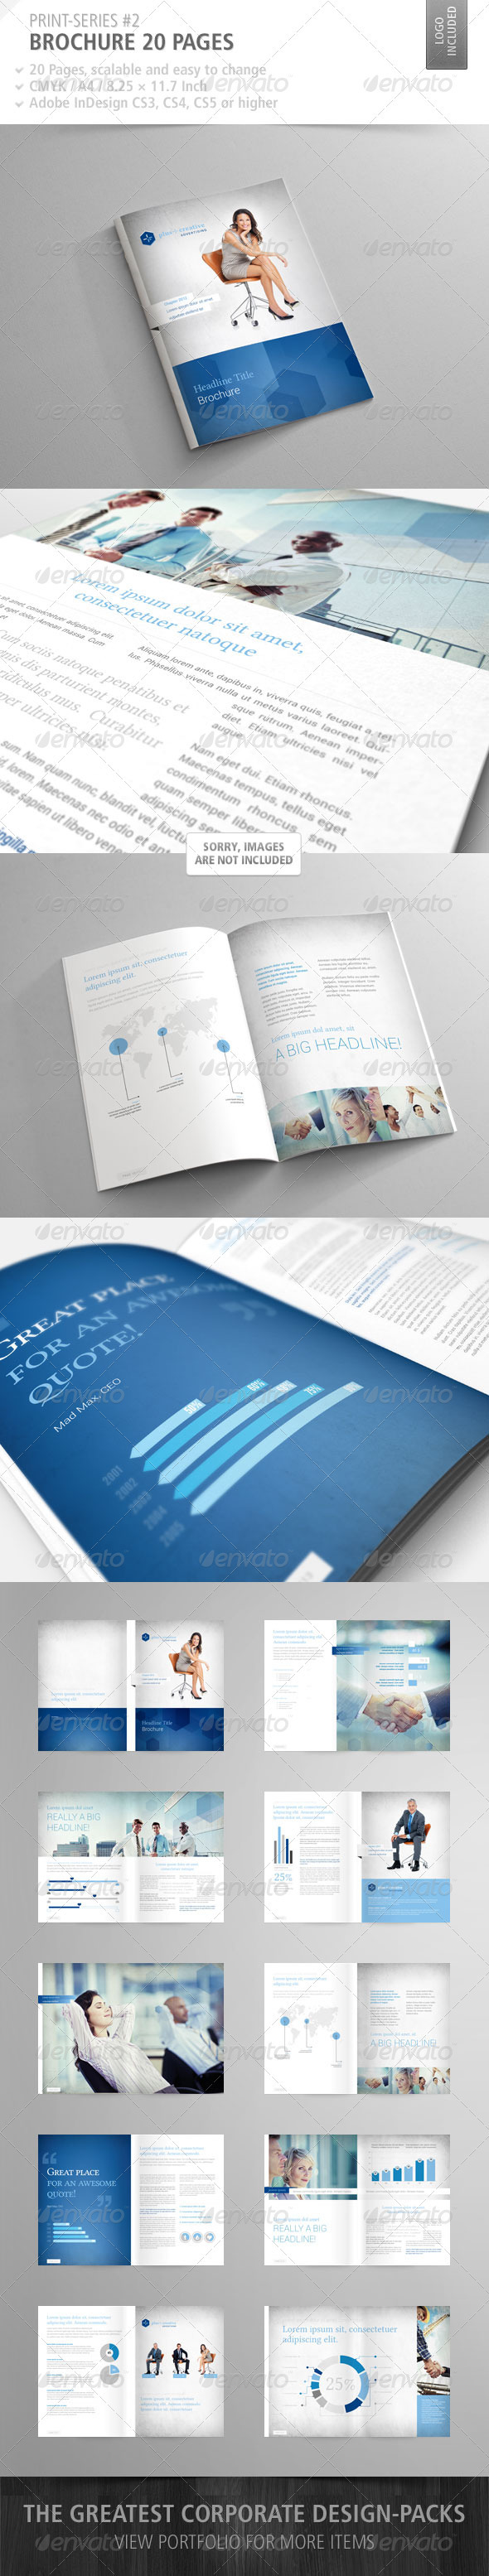 GraphicRiver Brochure 20 Pages Print-Series #2 2540433